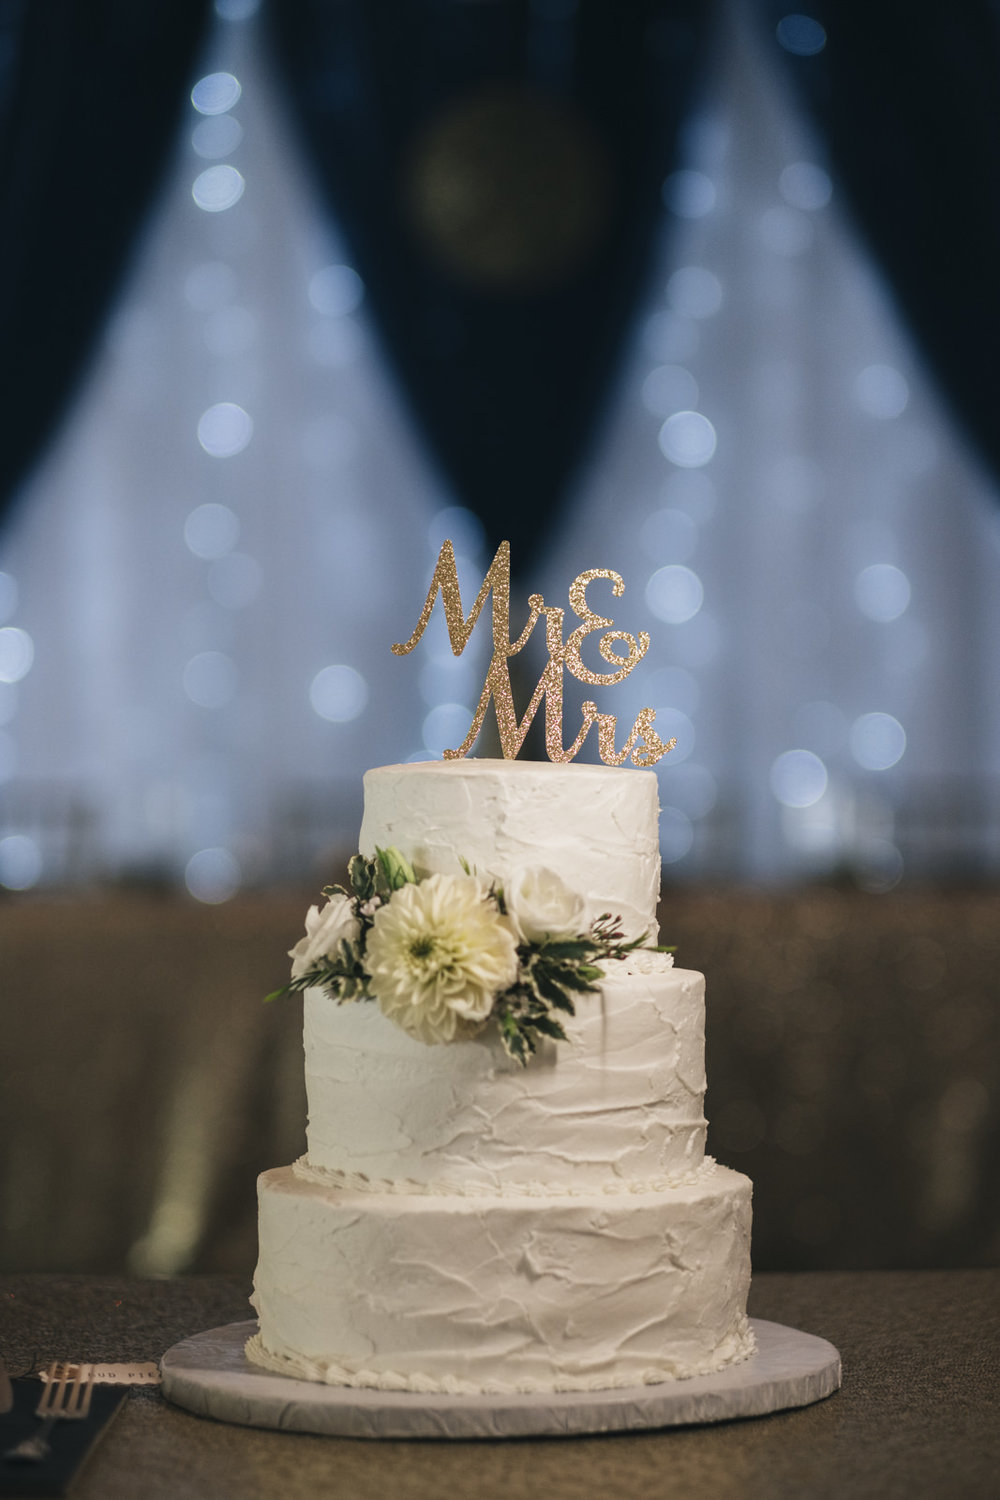 The bride and groom's wedding cake is from Cigi Cakes custom design in Marblehead Ohio